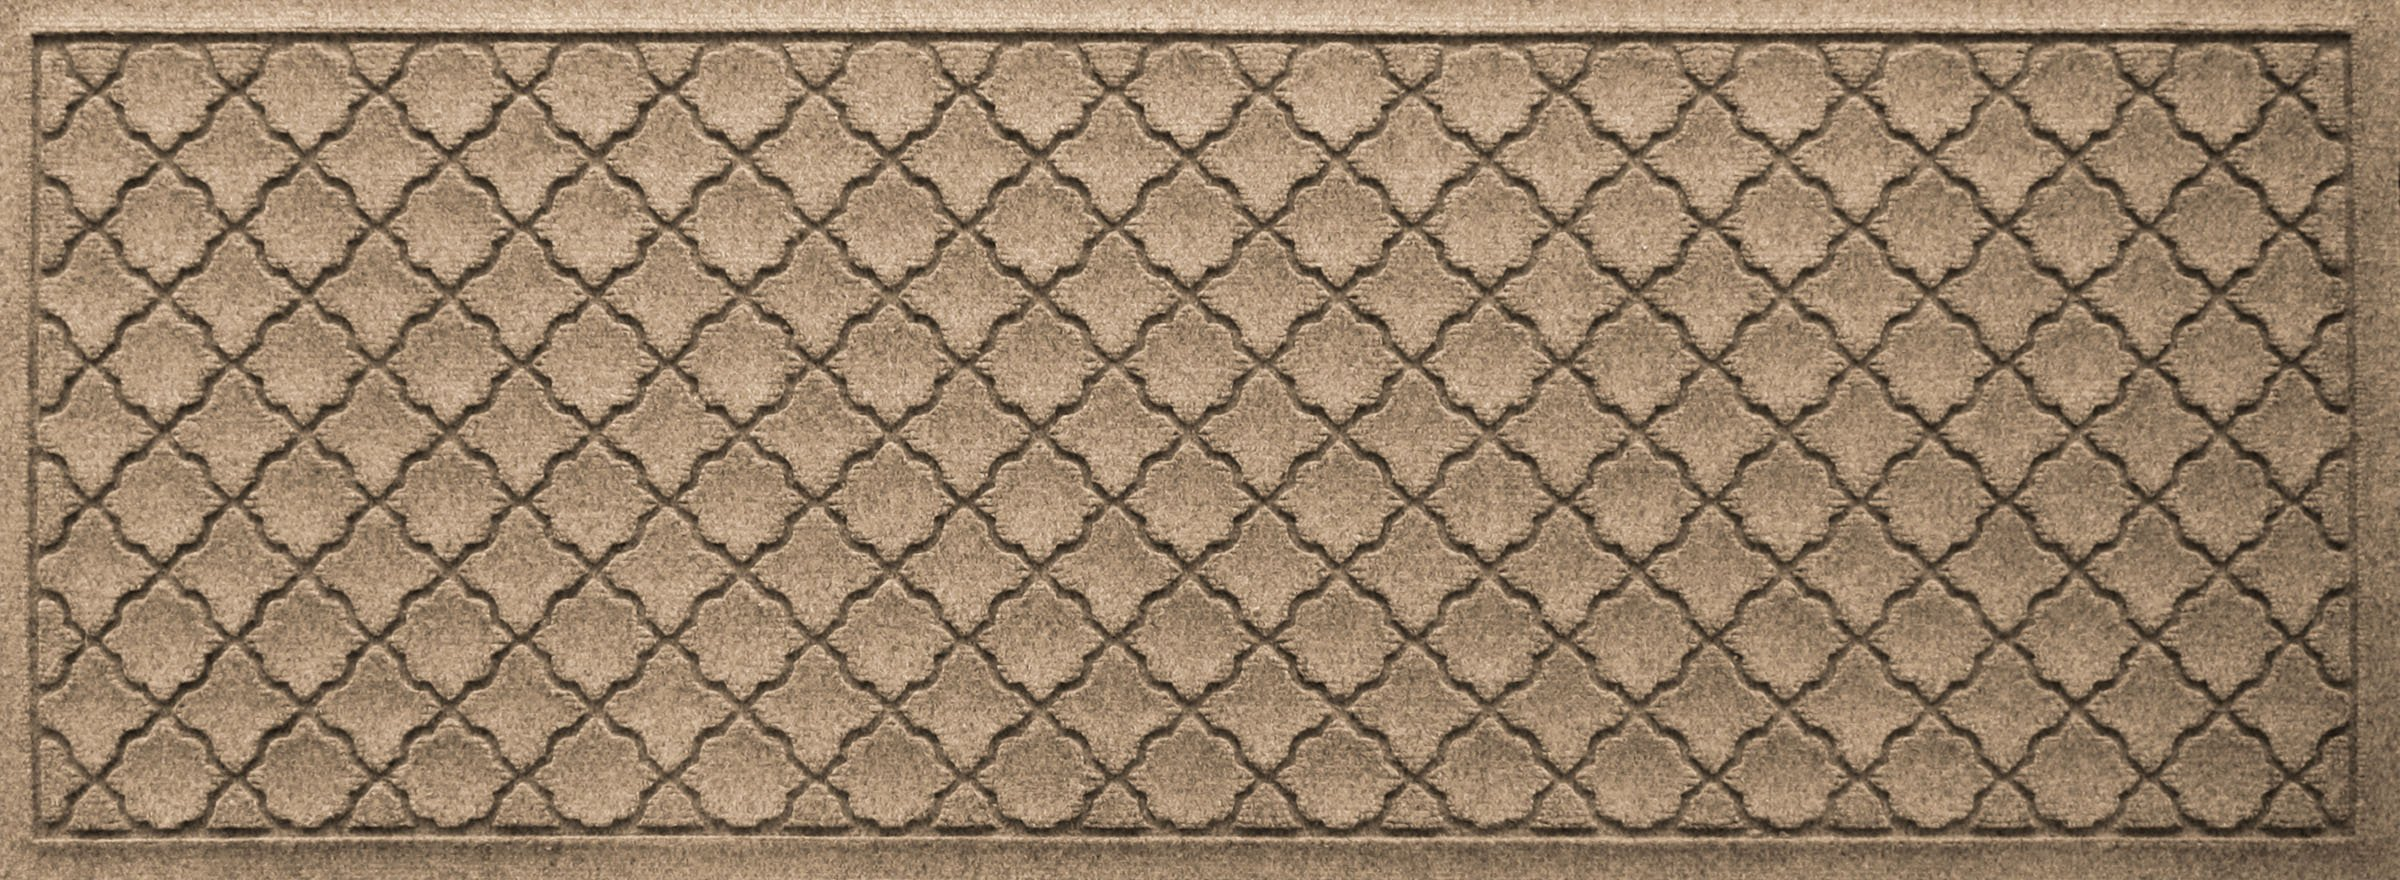 Bungalow Flooring Waterhog Indoor/Outdoor Runner Rug, 22'' x 60'', Skid Resistant, Easy to Clean, Catches Water and Debris, Cordova Collection, Khaki/Camel by Bungalow Flooring